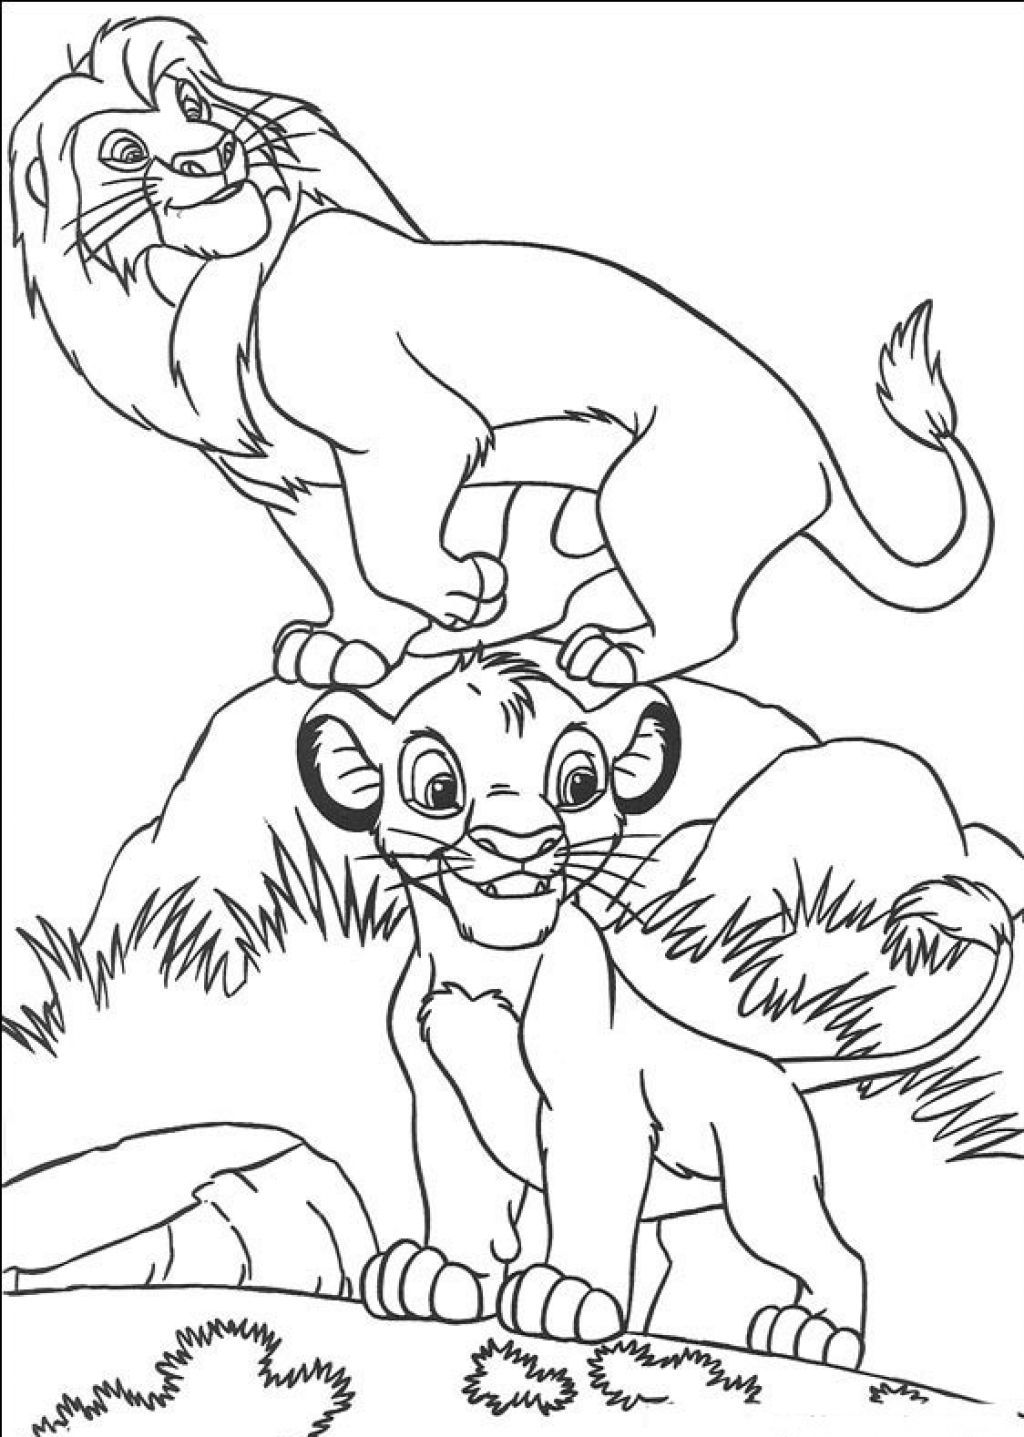 Printable-Simba-Coloring-Pages.jpg (1024×1437) | Disney Coloring ...